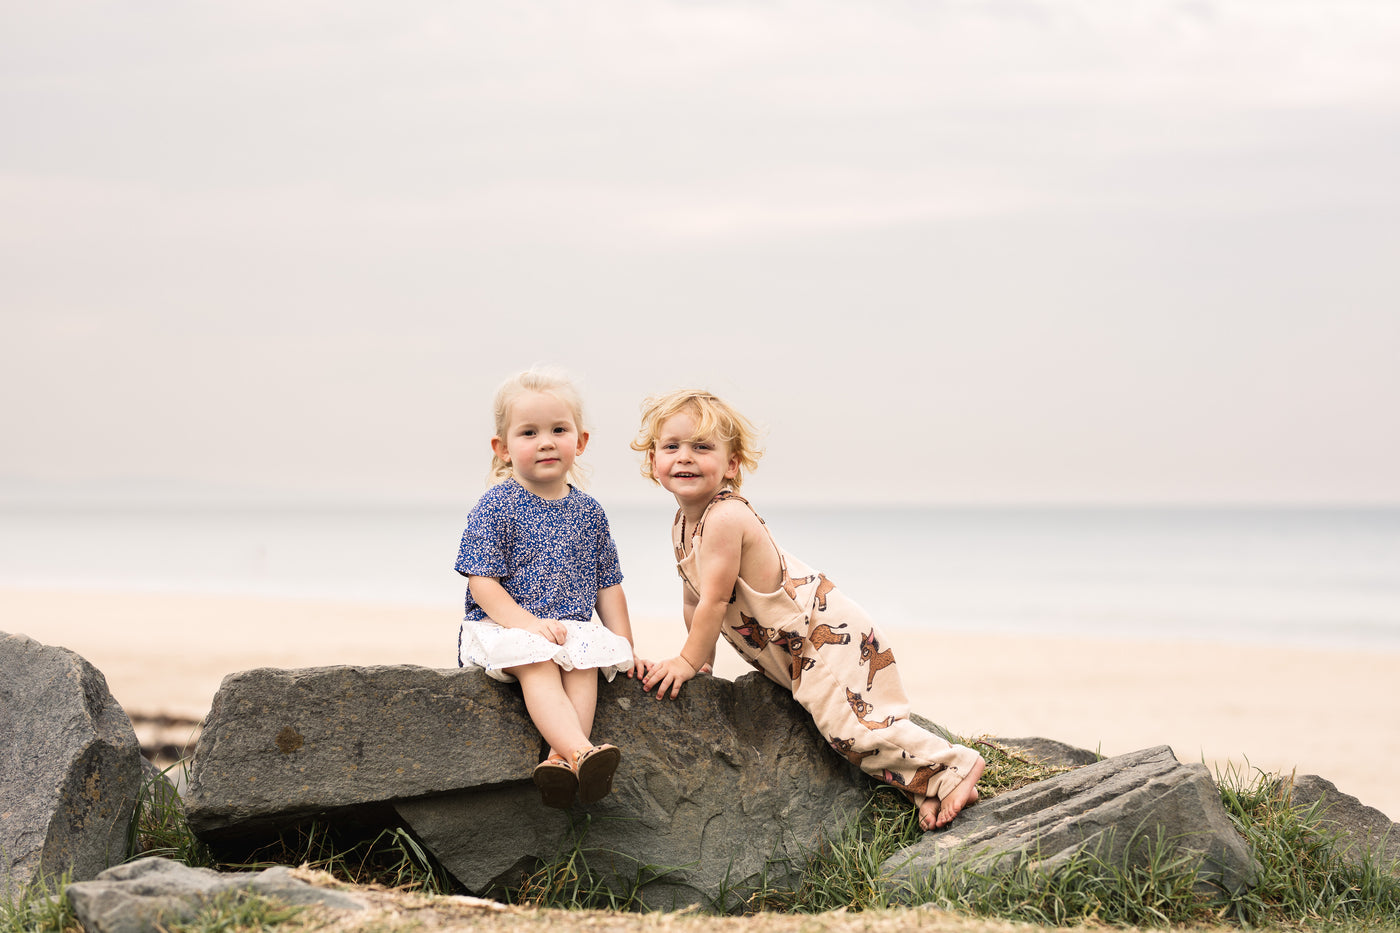 scandinavian inspired well made, fashionable, sustainainable kids wear